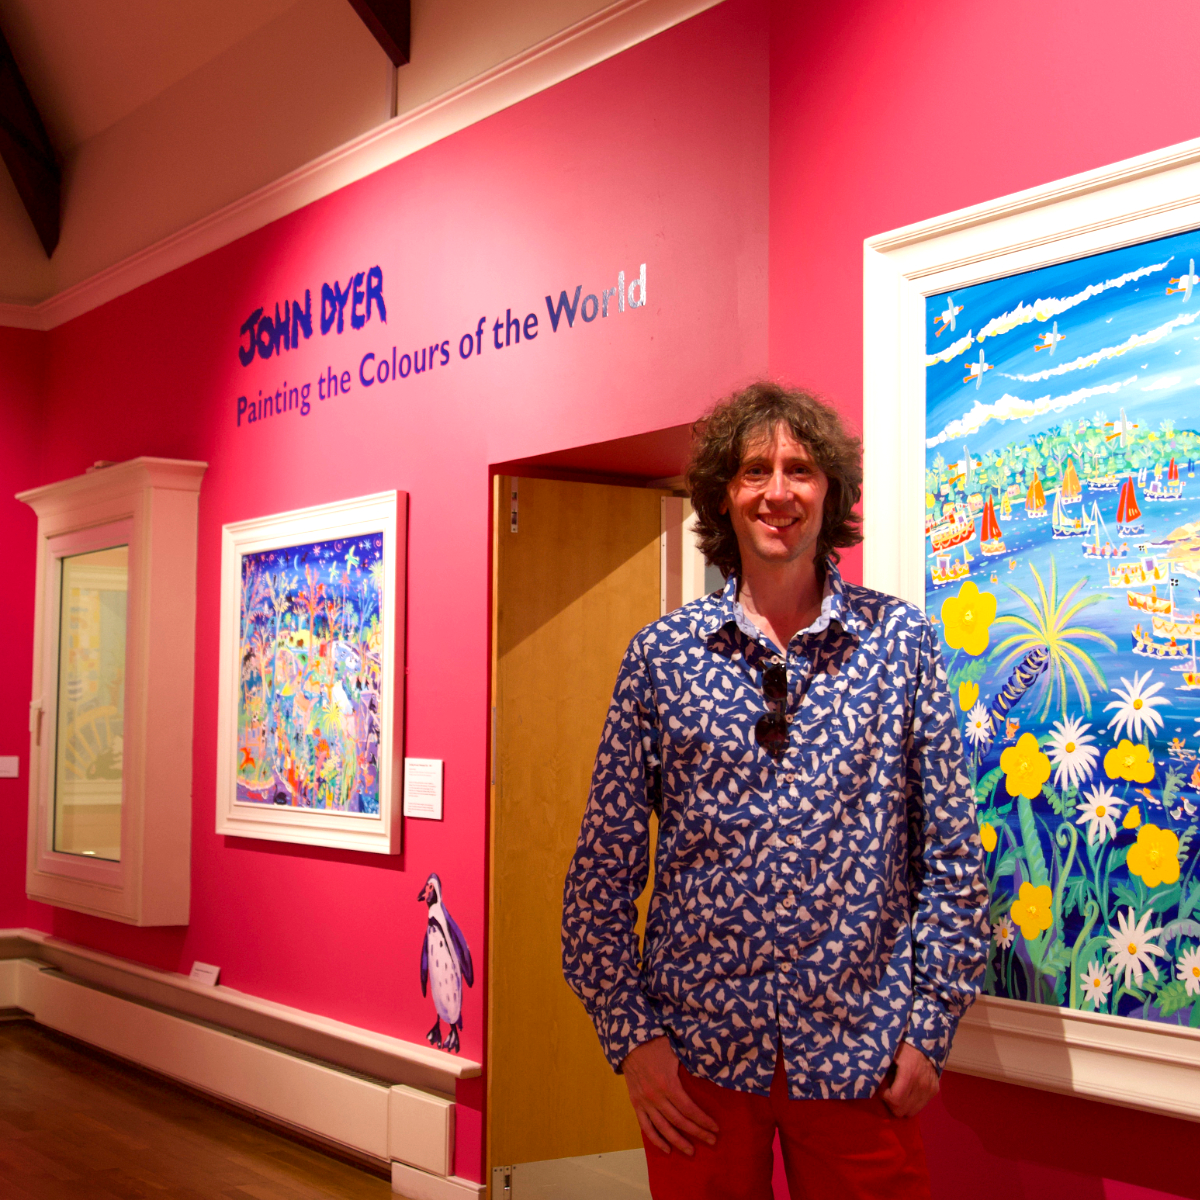 Cornwall's best loved artist, John Dyer, pictured at his 50th birthday retrospective exhibition in Falmouth Art Gallery in Cornwall